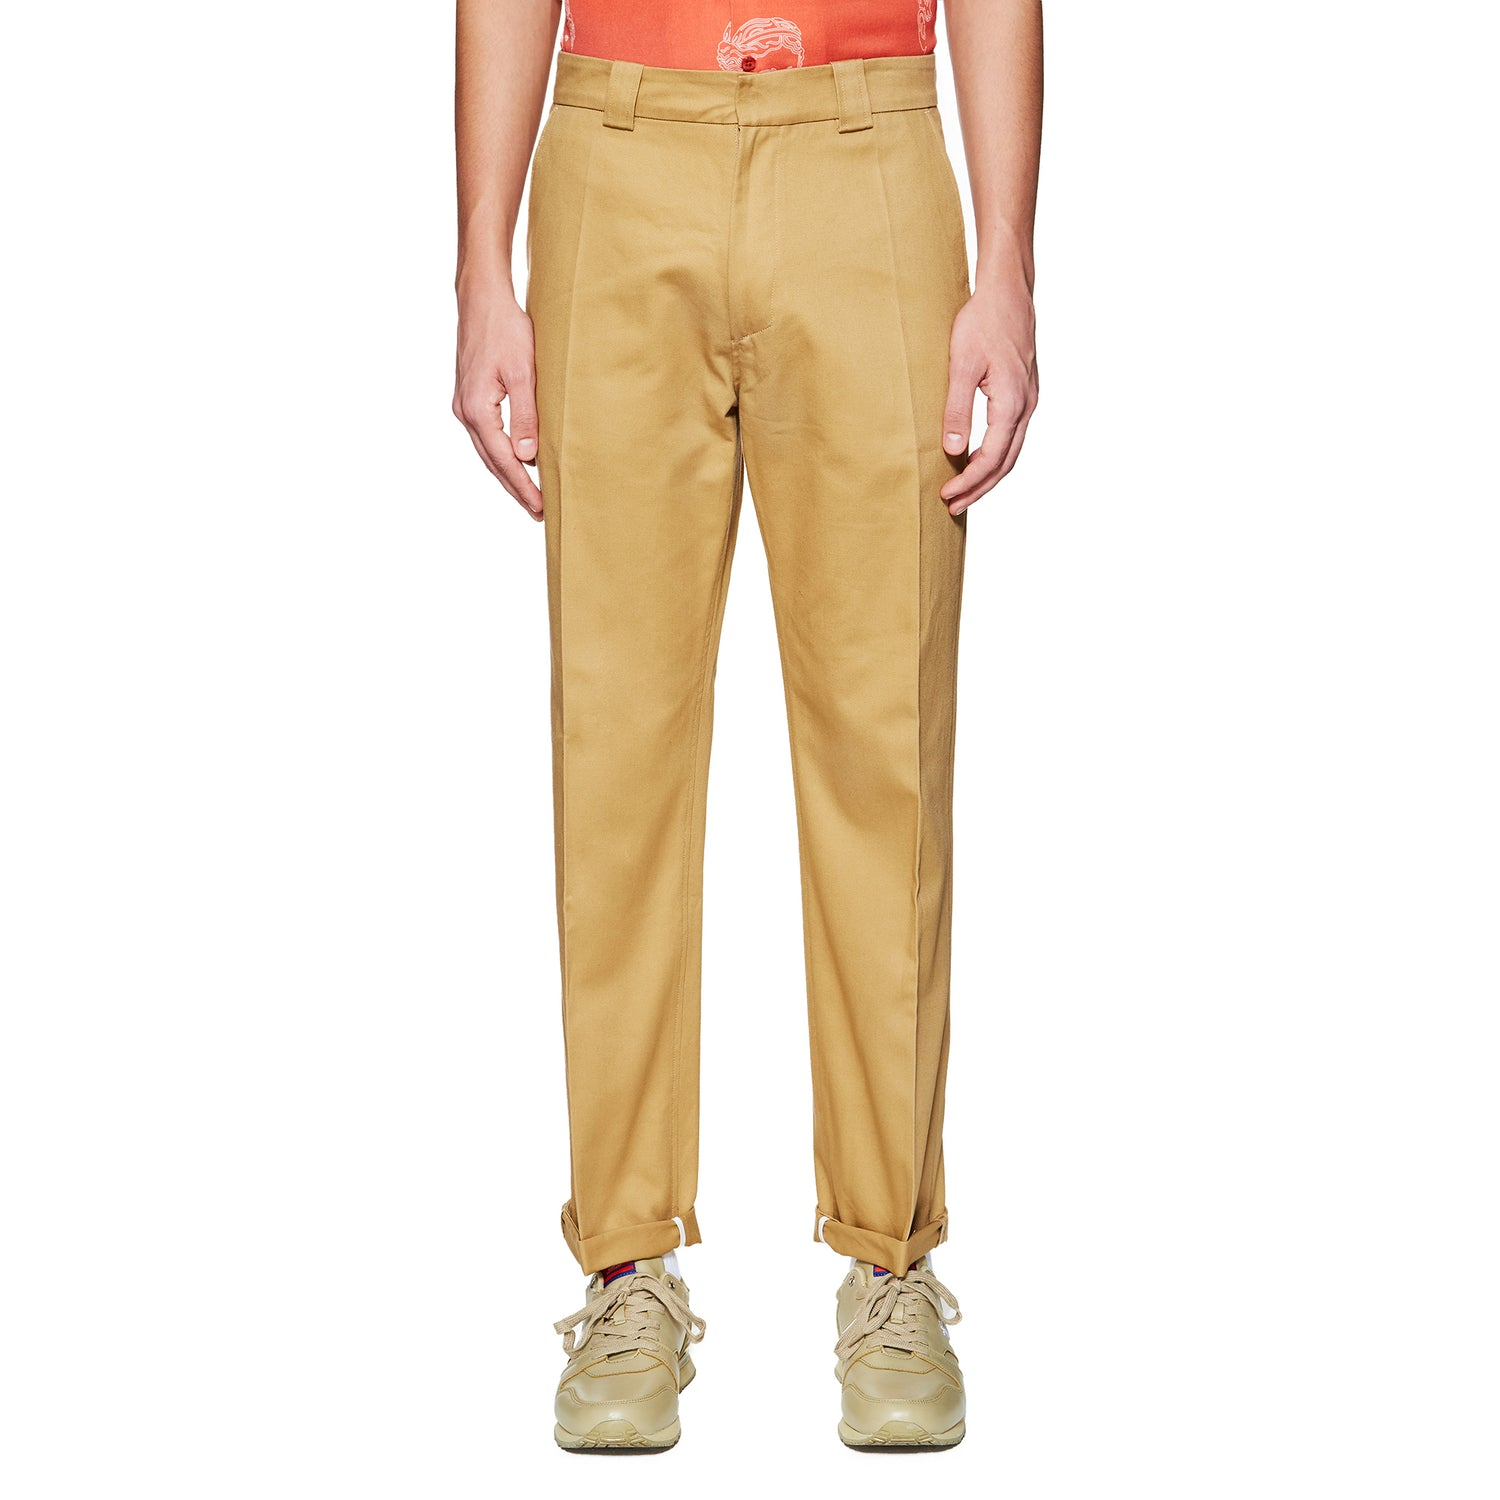 WORKWEAR TROUSERS BEIGE